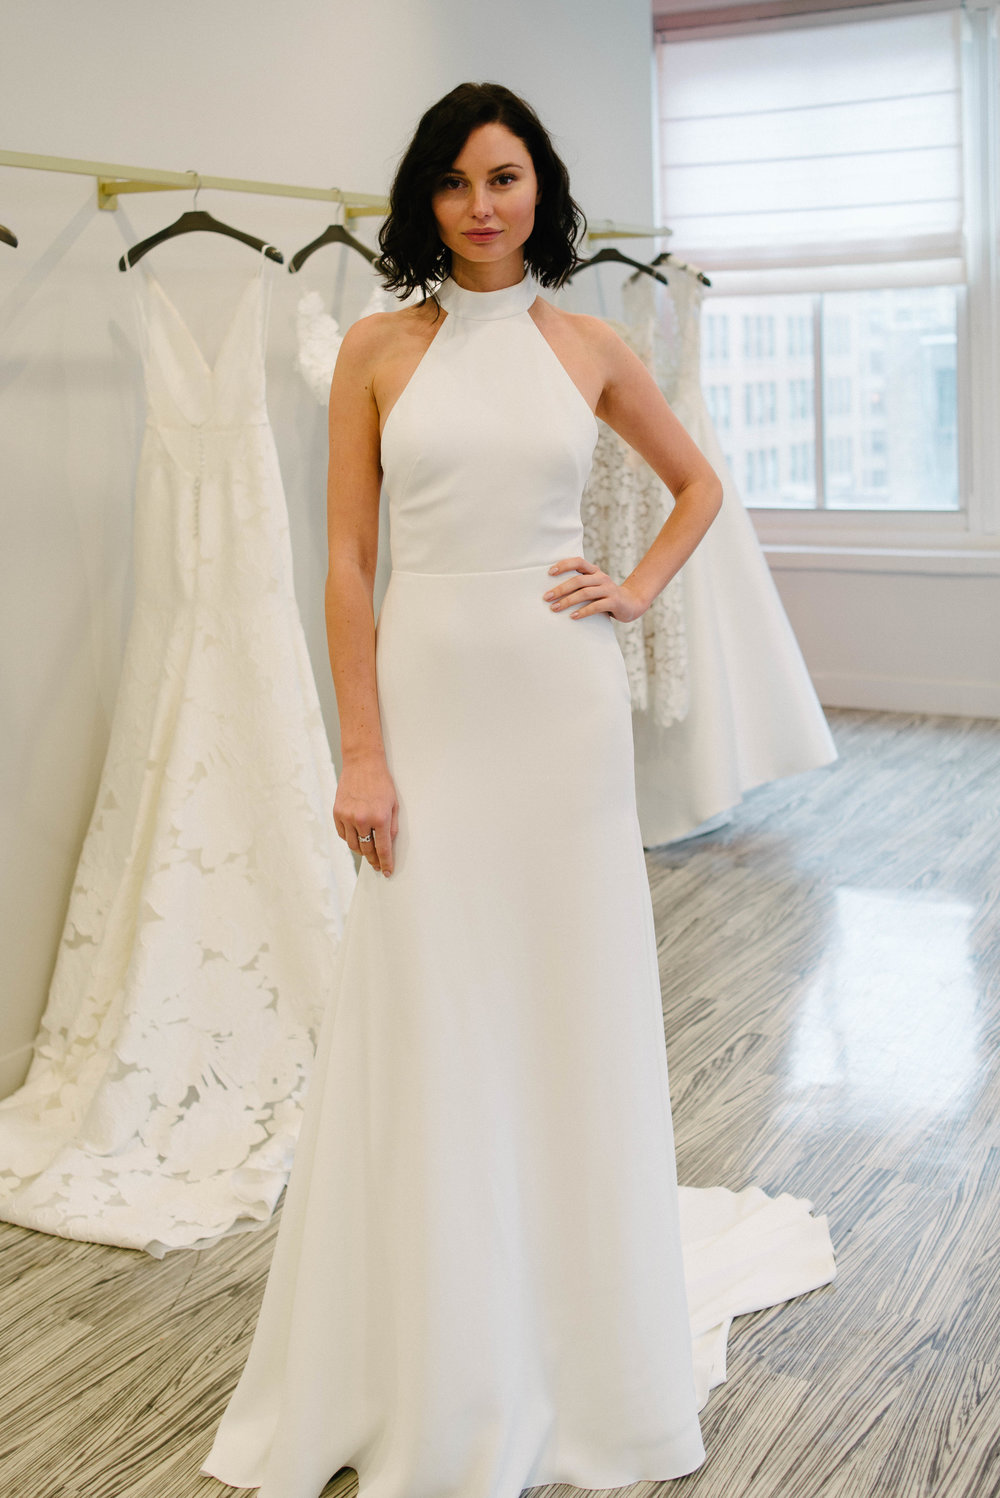 Bridal Fashion Week Trends 2019, New York Bridal Fashion Week, Bridal Market, Meghan Markle